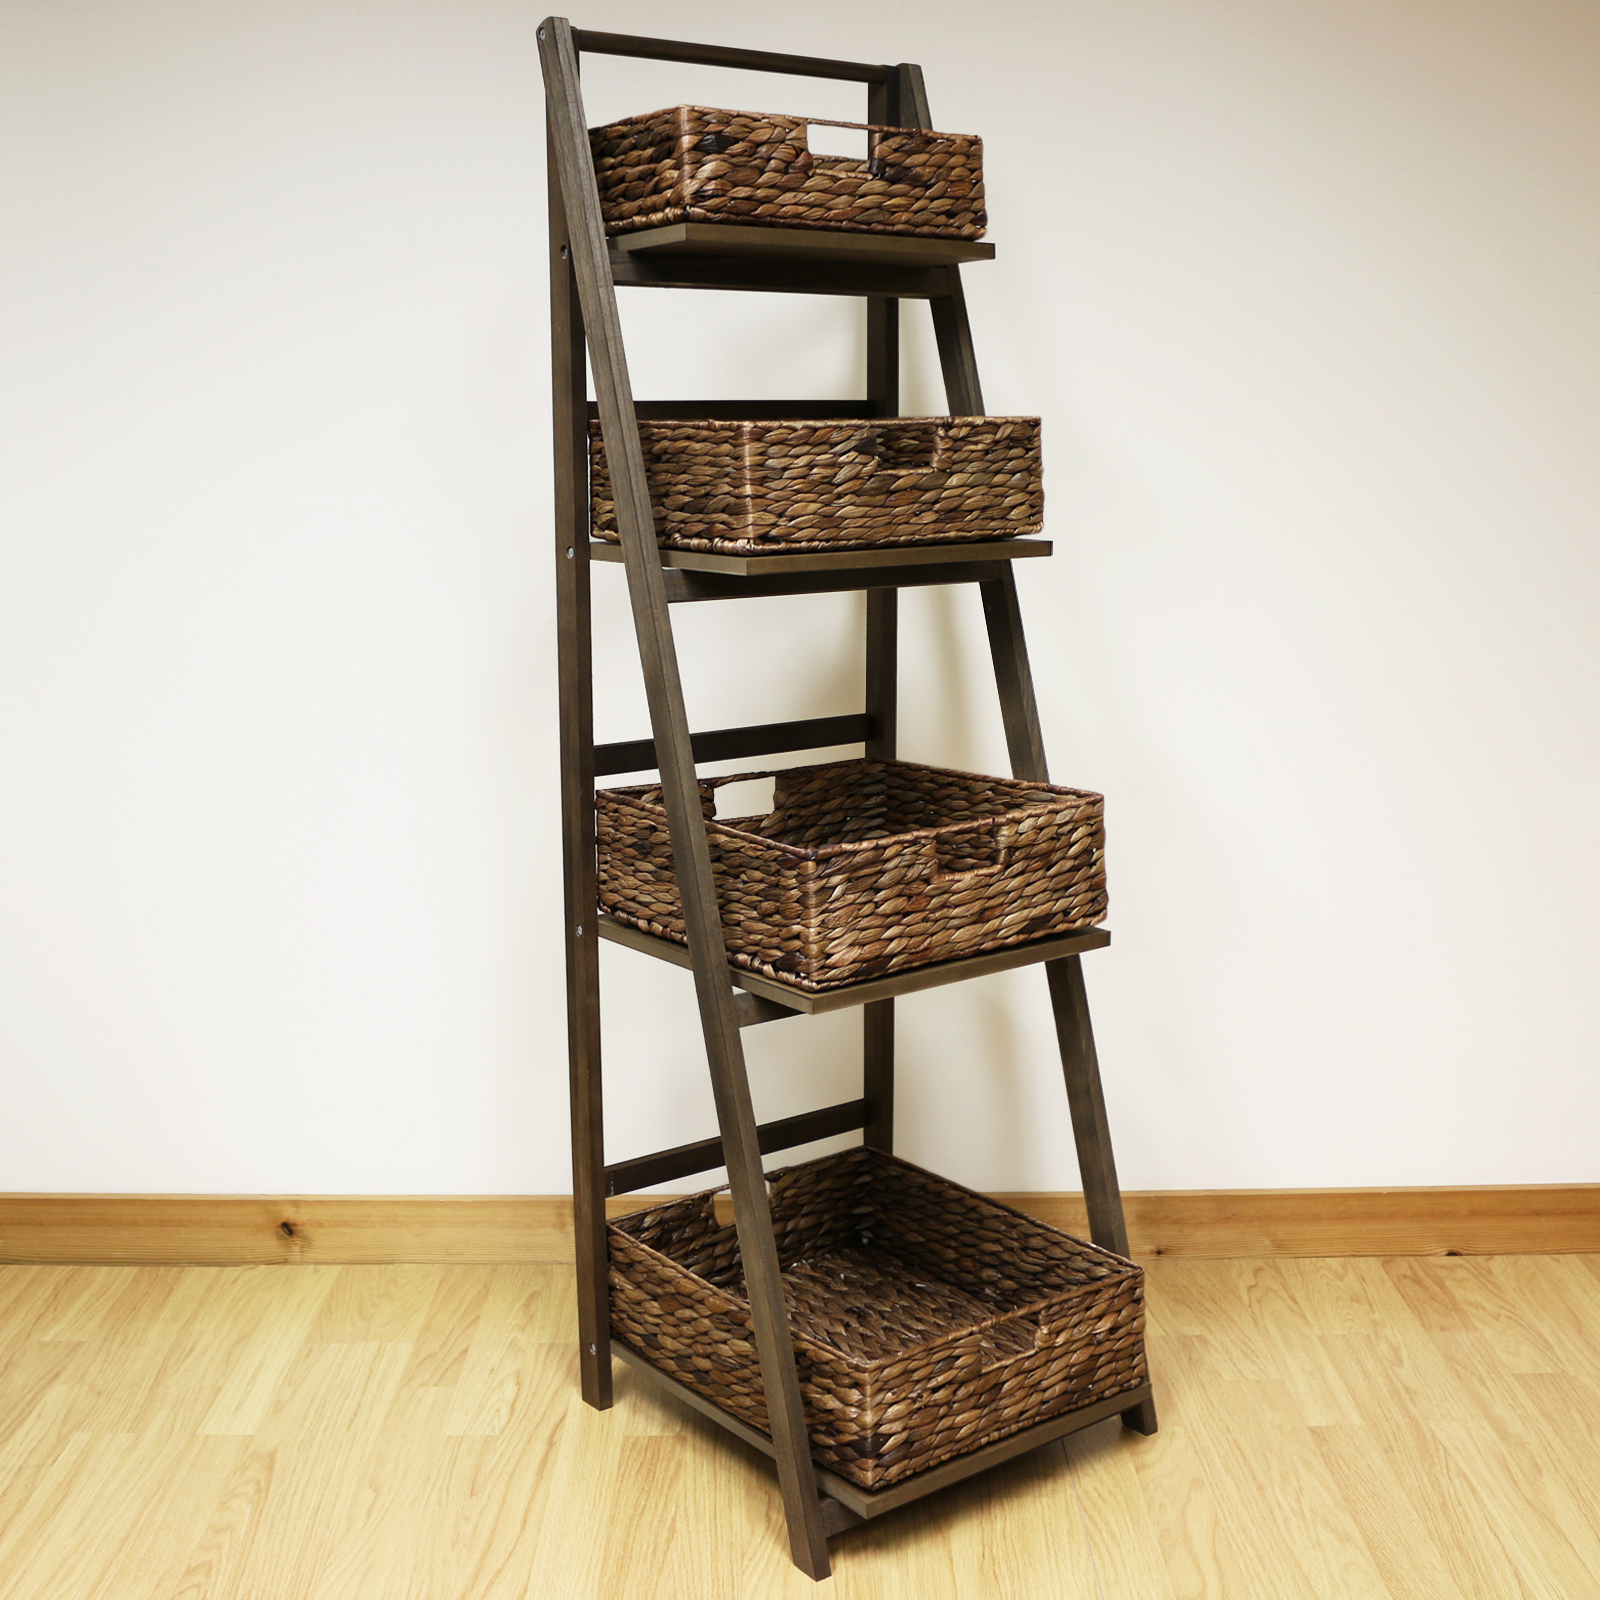 Wooden Ladder Shelf ~ Dark brown tier wooden ladder shelf display unit